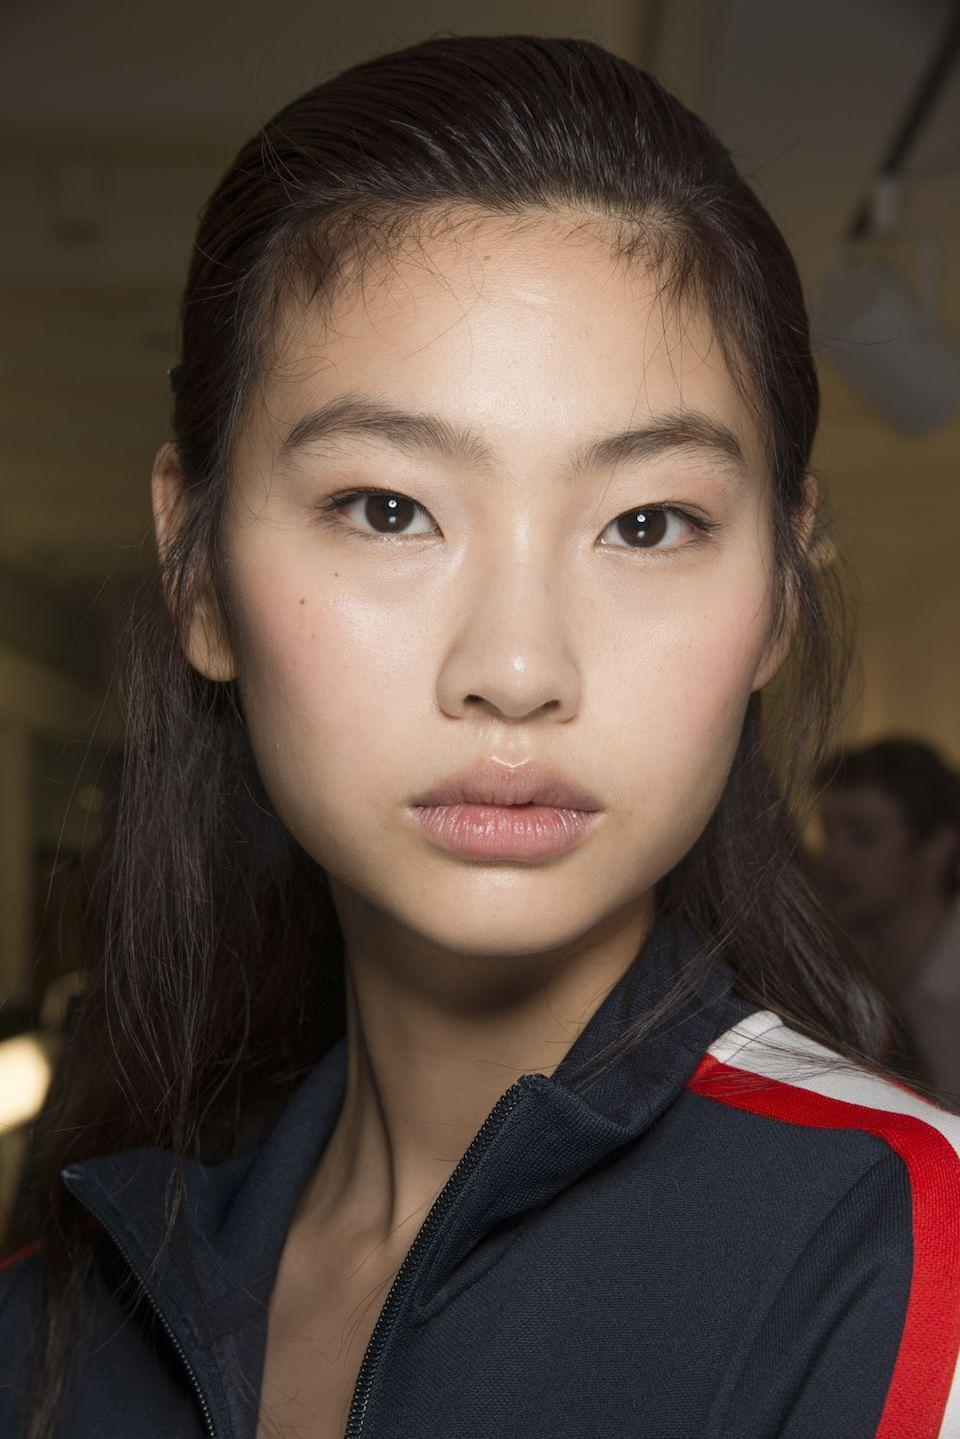 <p>Like most seasons, Tory Burch's models walked the runway looking glowy and fresh-faced-with almost no visible makeup.</p>